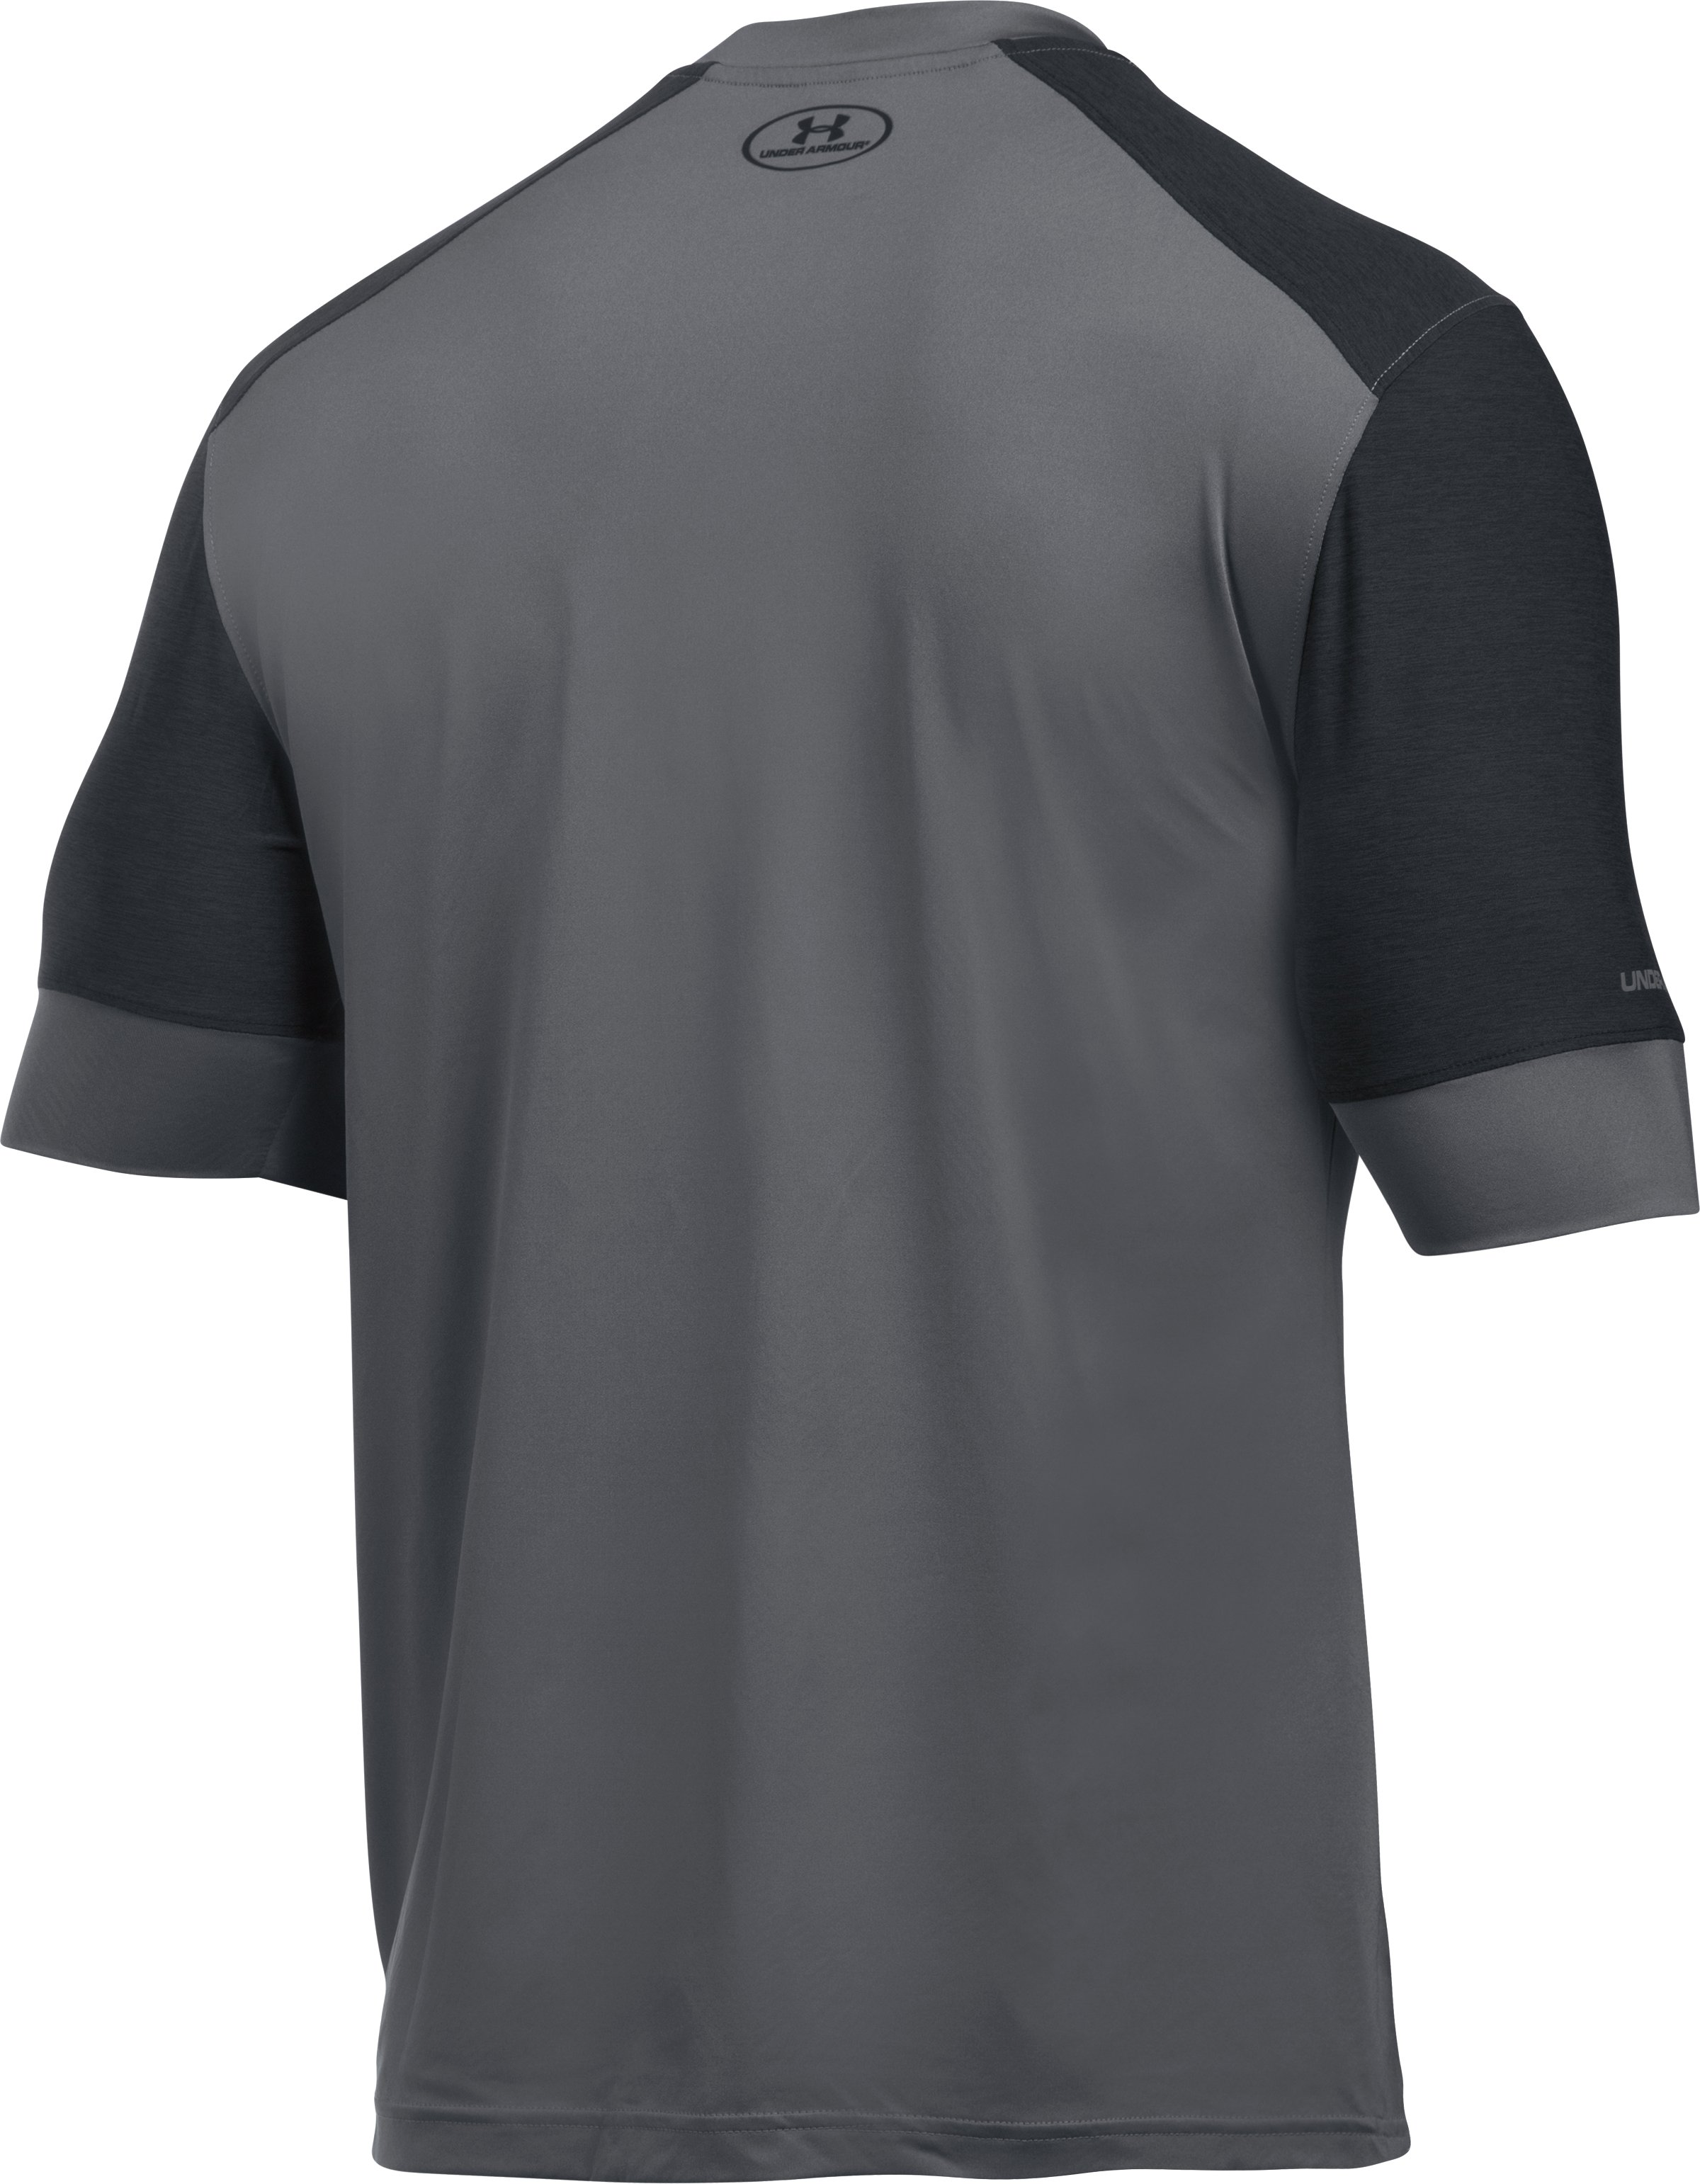 Men's UA CoolSwitch Pitch Training Top, Graphite, undefined